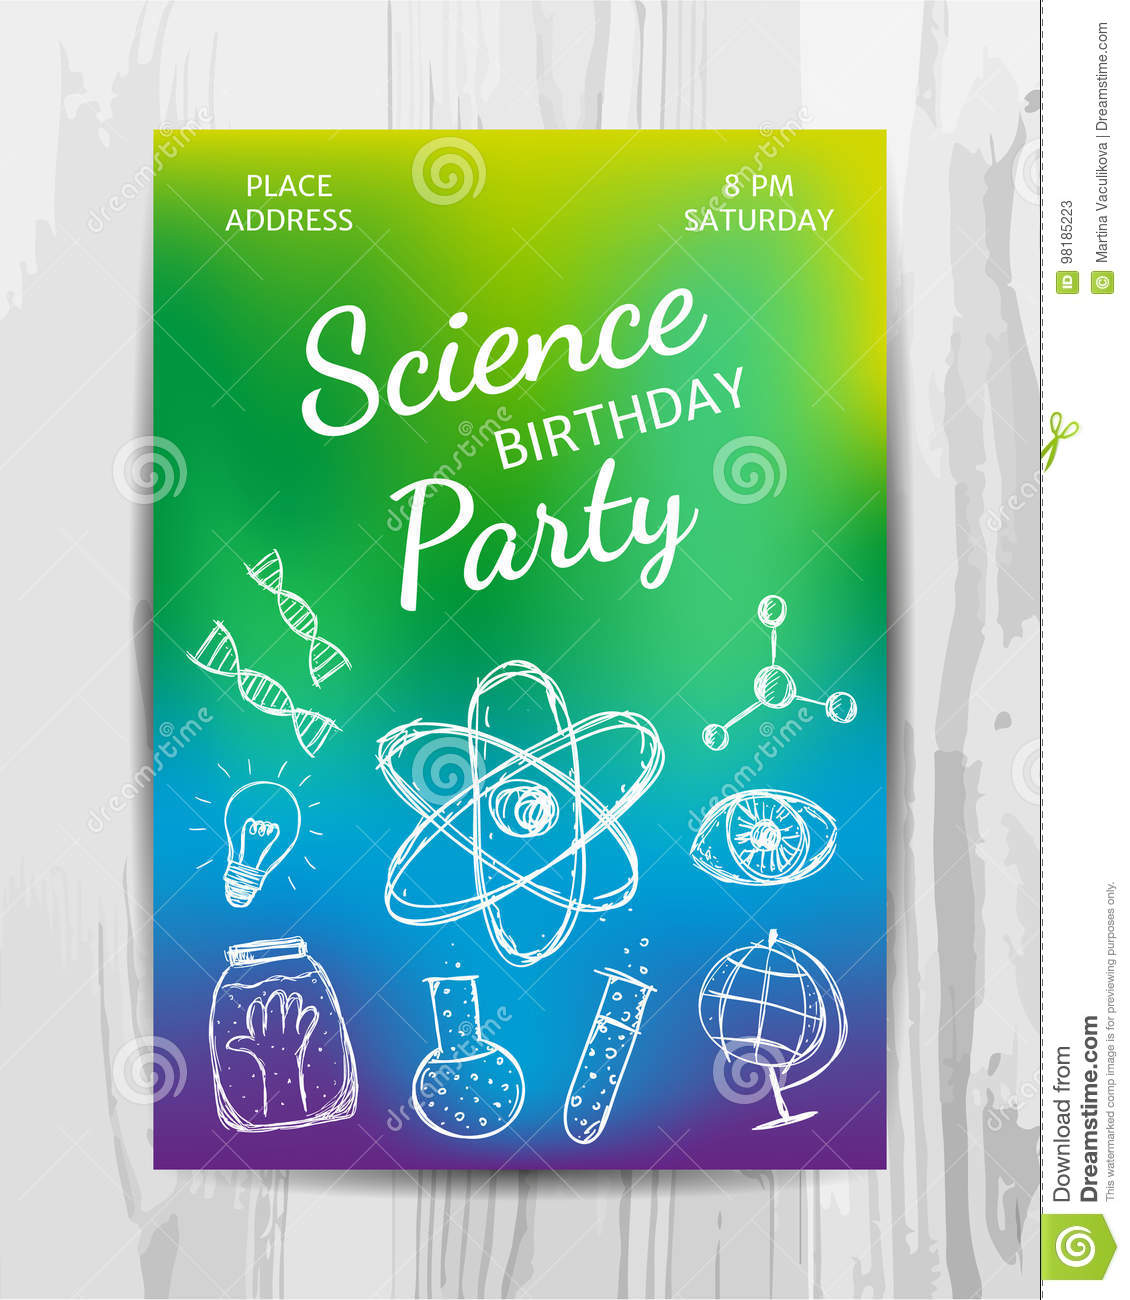 Free Science Birthday Party Invitation Templates Cogimbous - Party invitation template: free science birthday party invitation templates